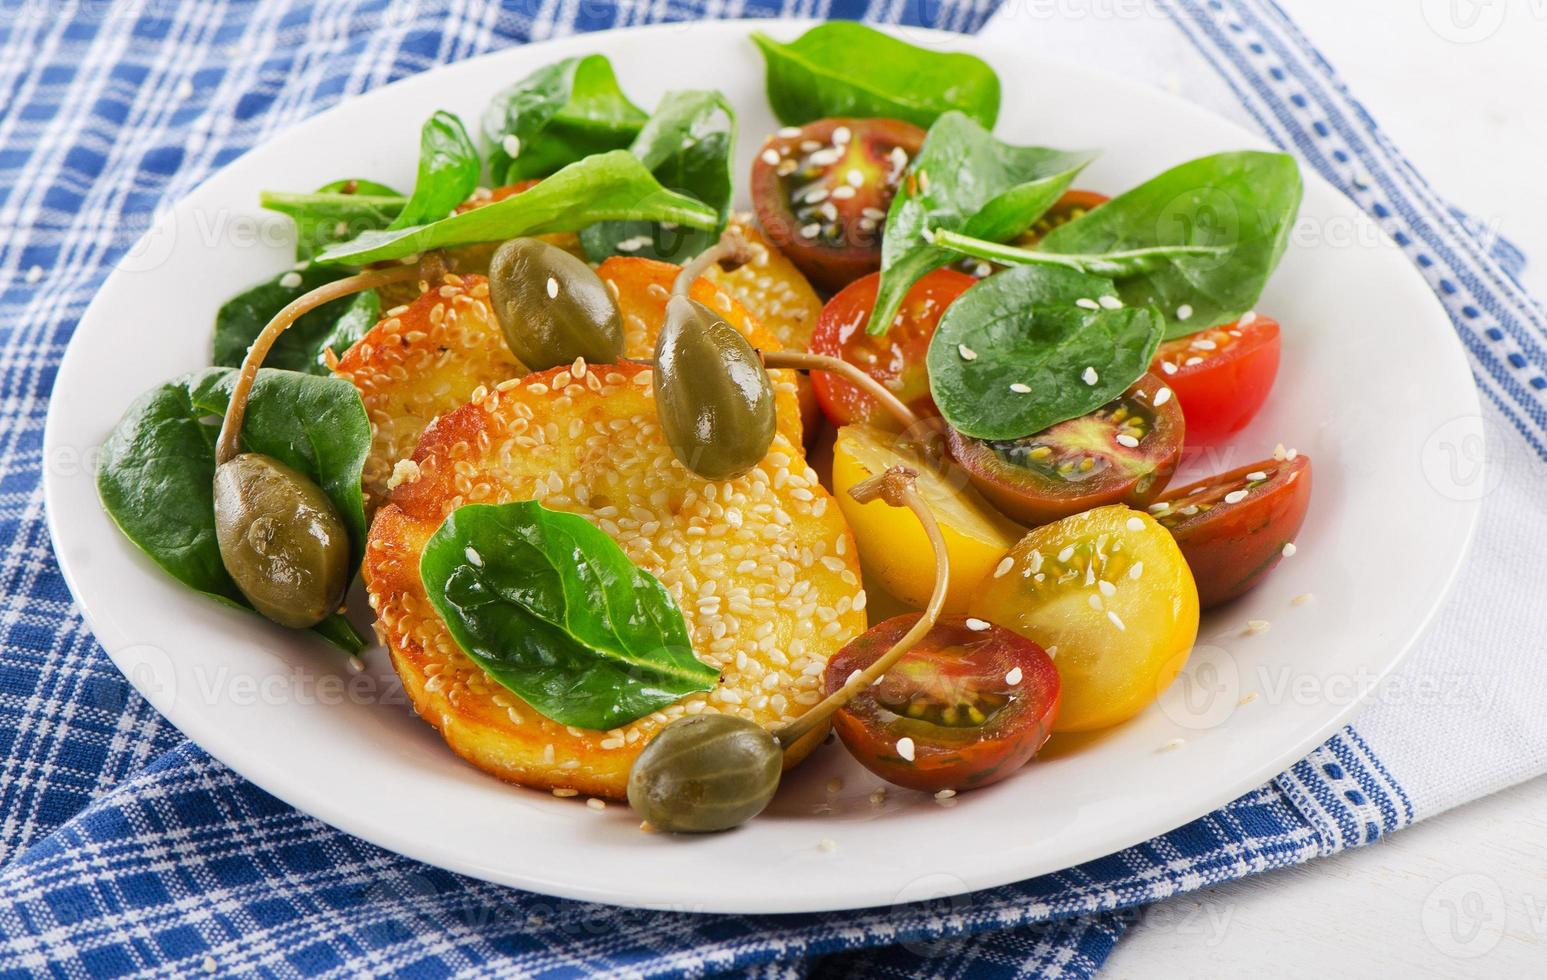 Slices of halloumi cheese with fresh vegetables. photo